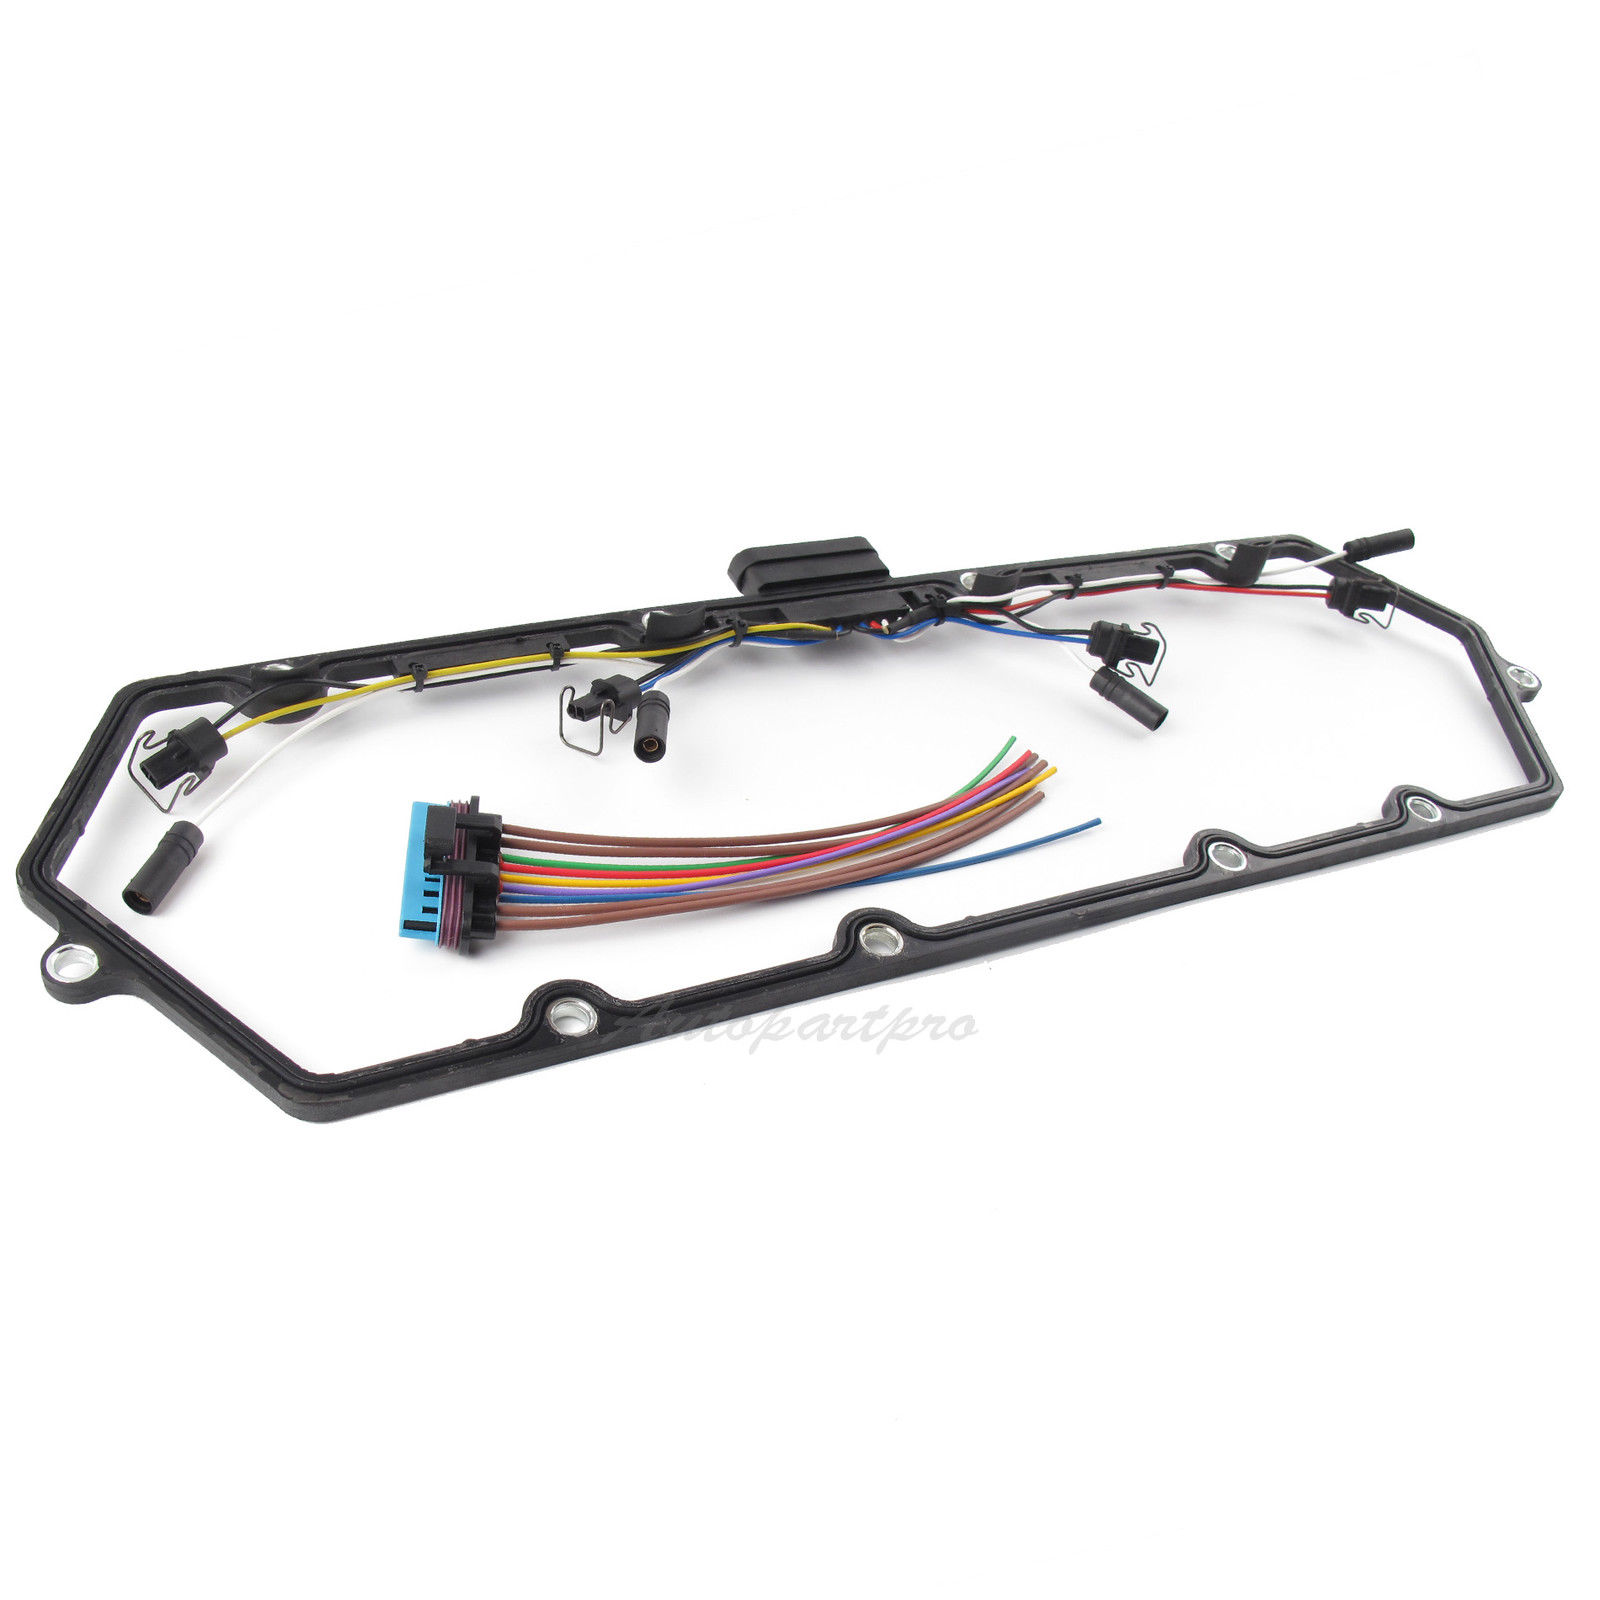 For Ford 7.3 Powerstroke Valve Cover Gasket with Fuel